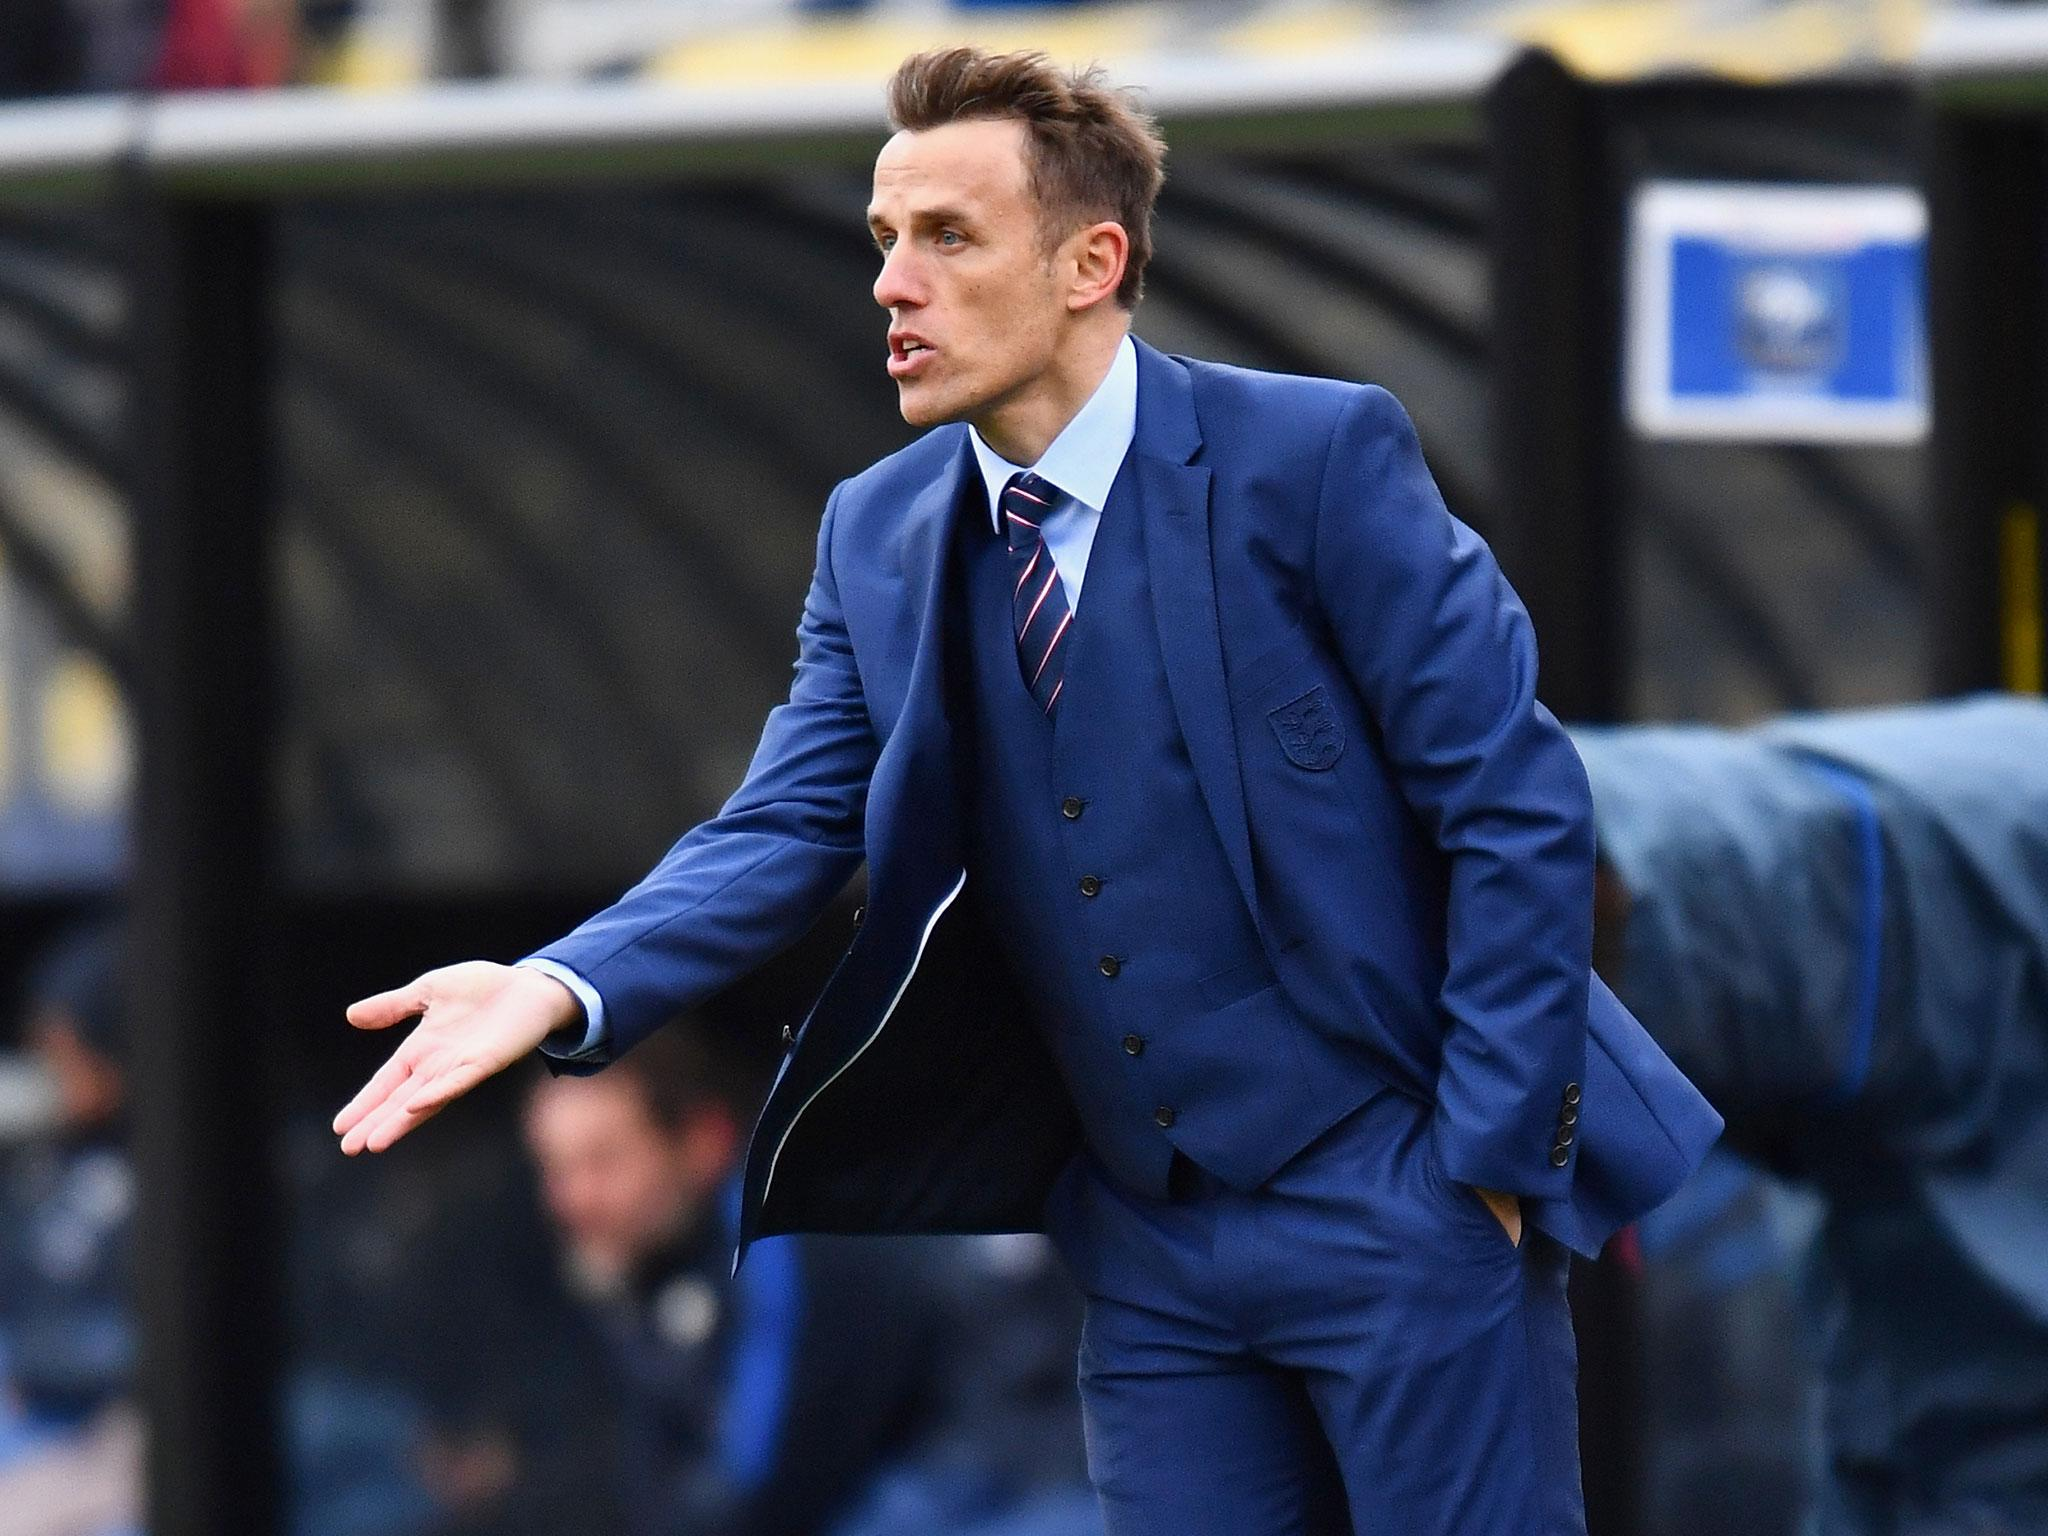 Phil Neville has chance to build upon impressive start to life as England manager